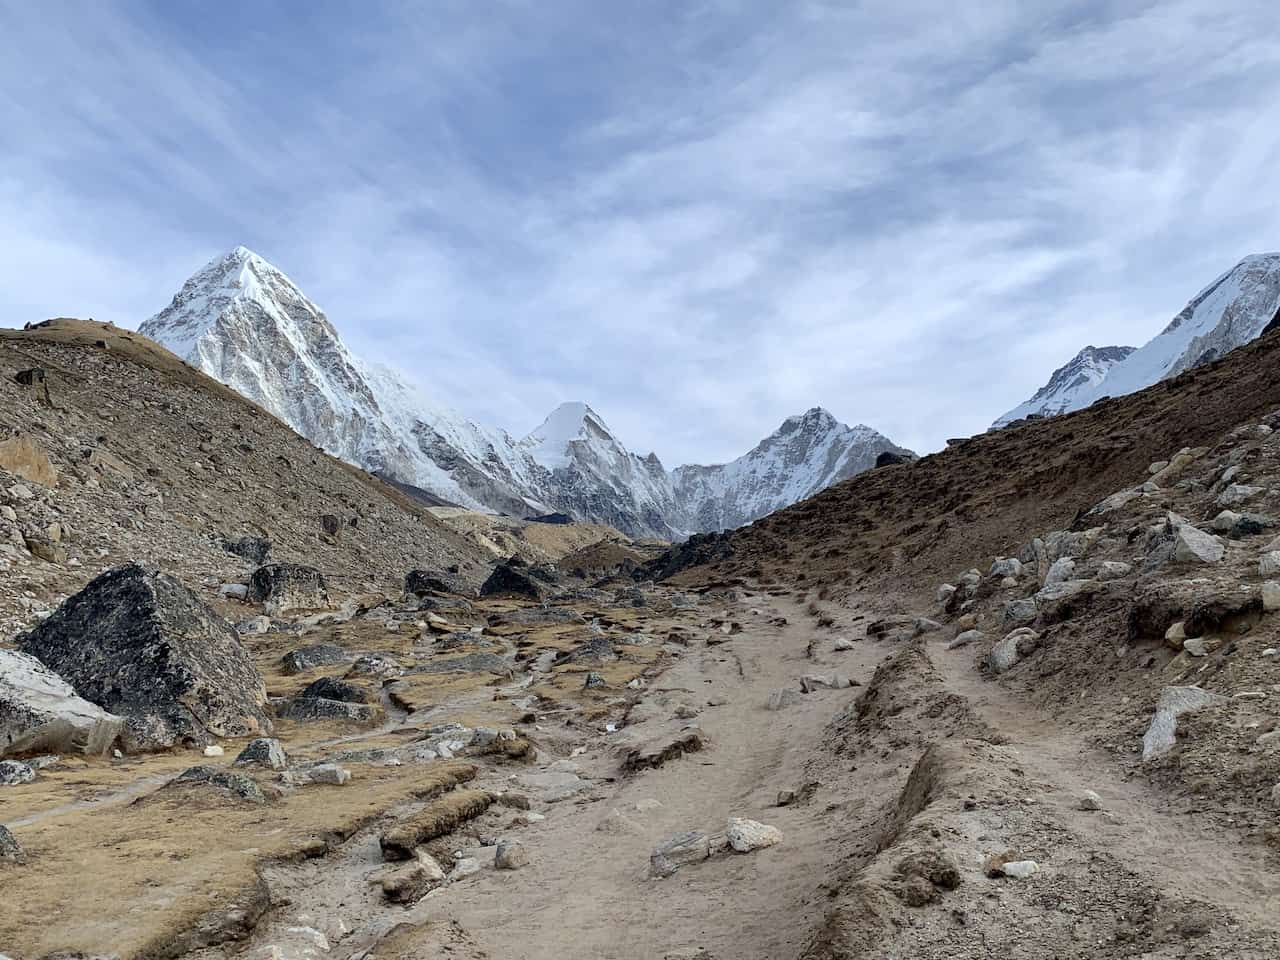 Lobuche to Gorak Shep Trail